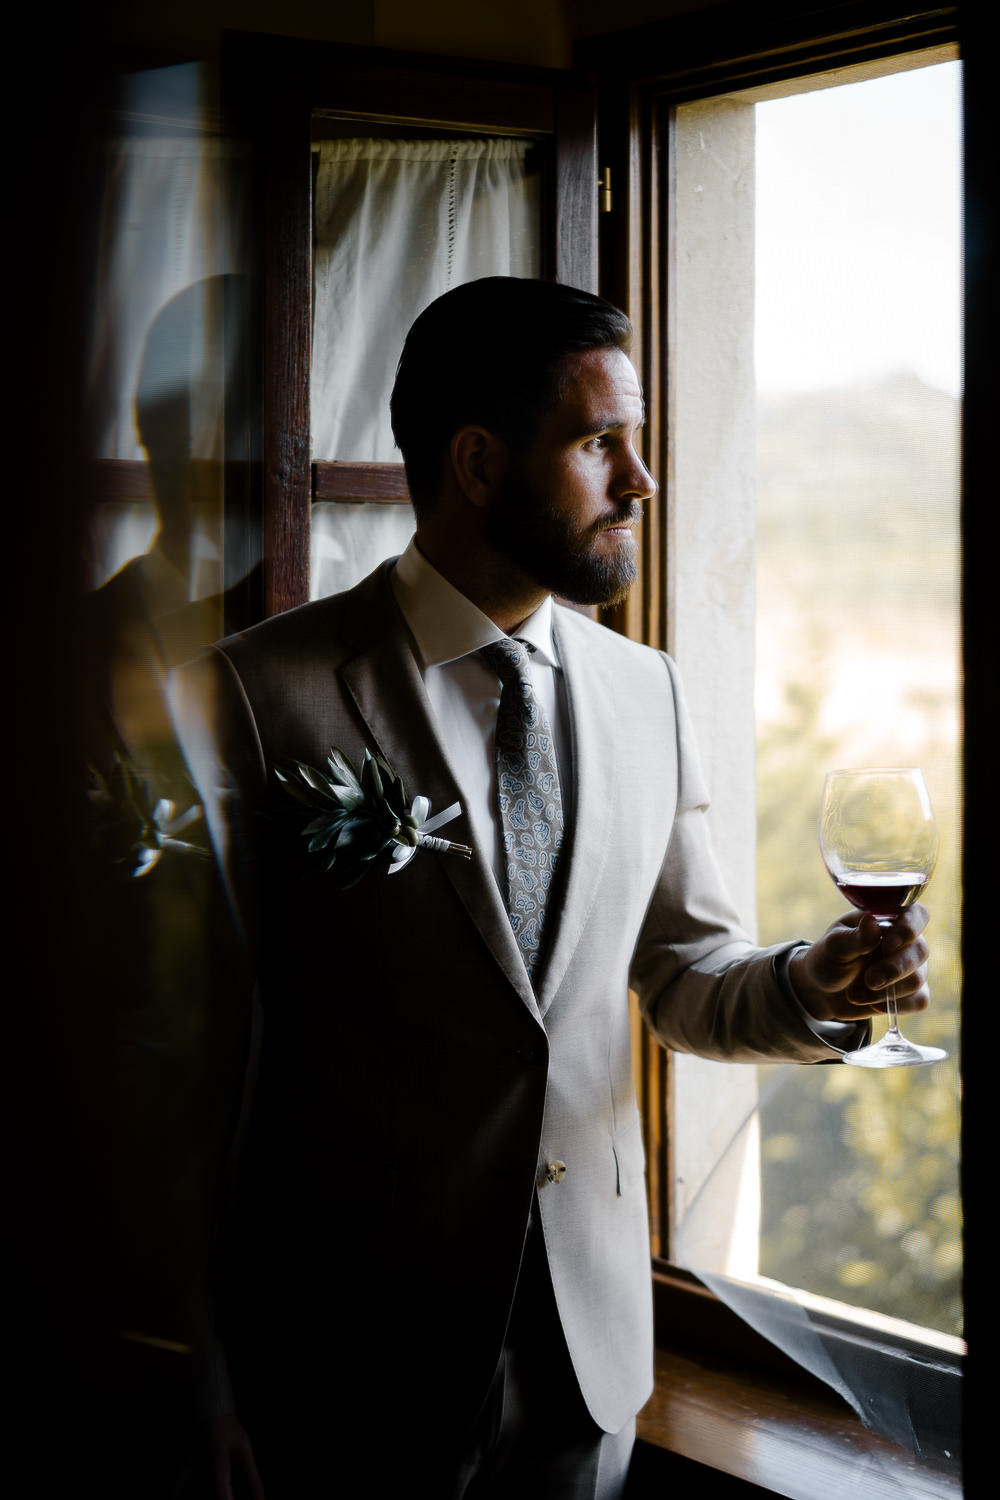 mark hadden wedding photographer amsterdam bride groom and red wine